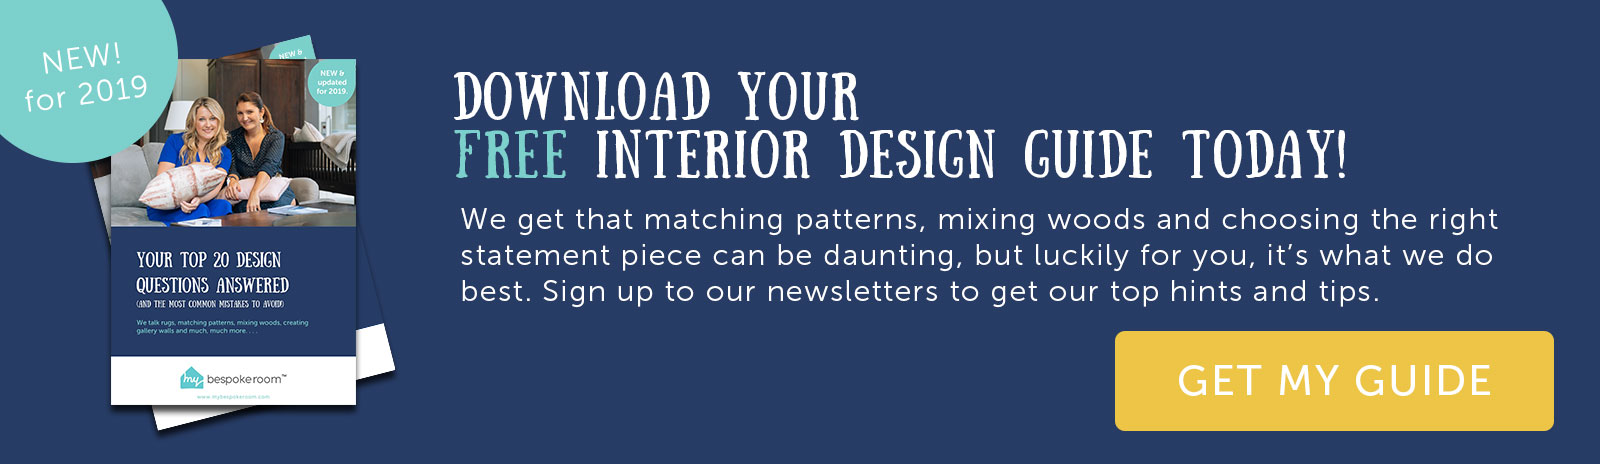 Download your free interior design guide today!